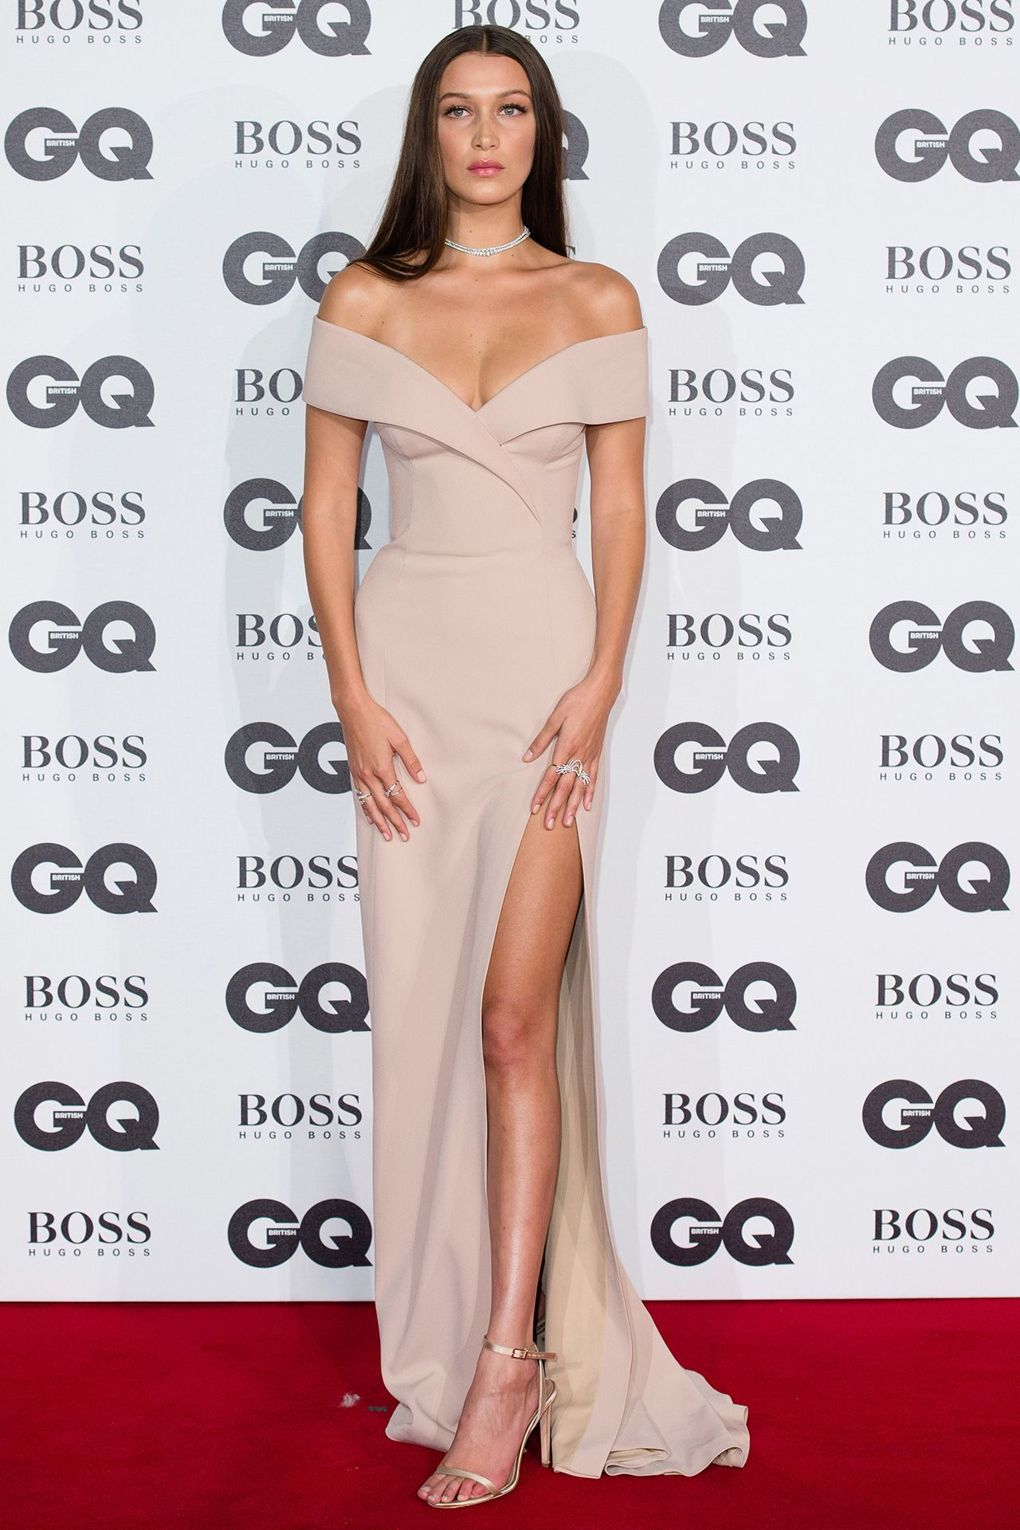 Bella Hadid at the GQ Men Of The Year Awards